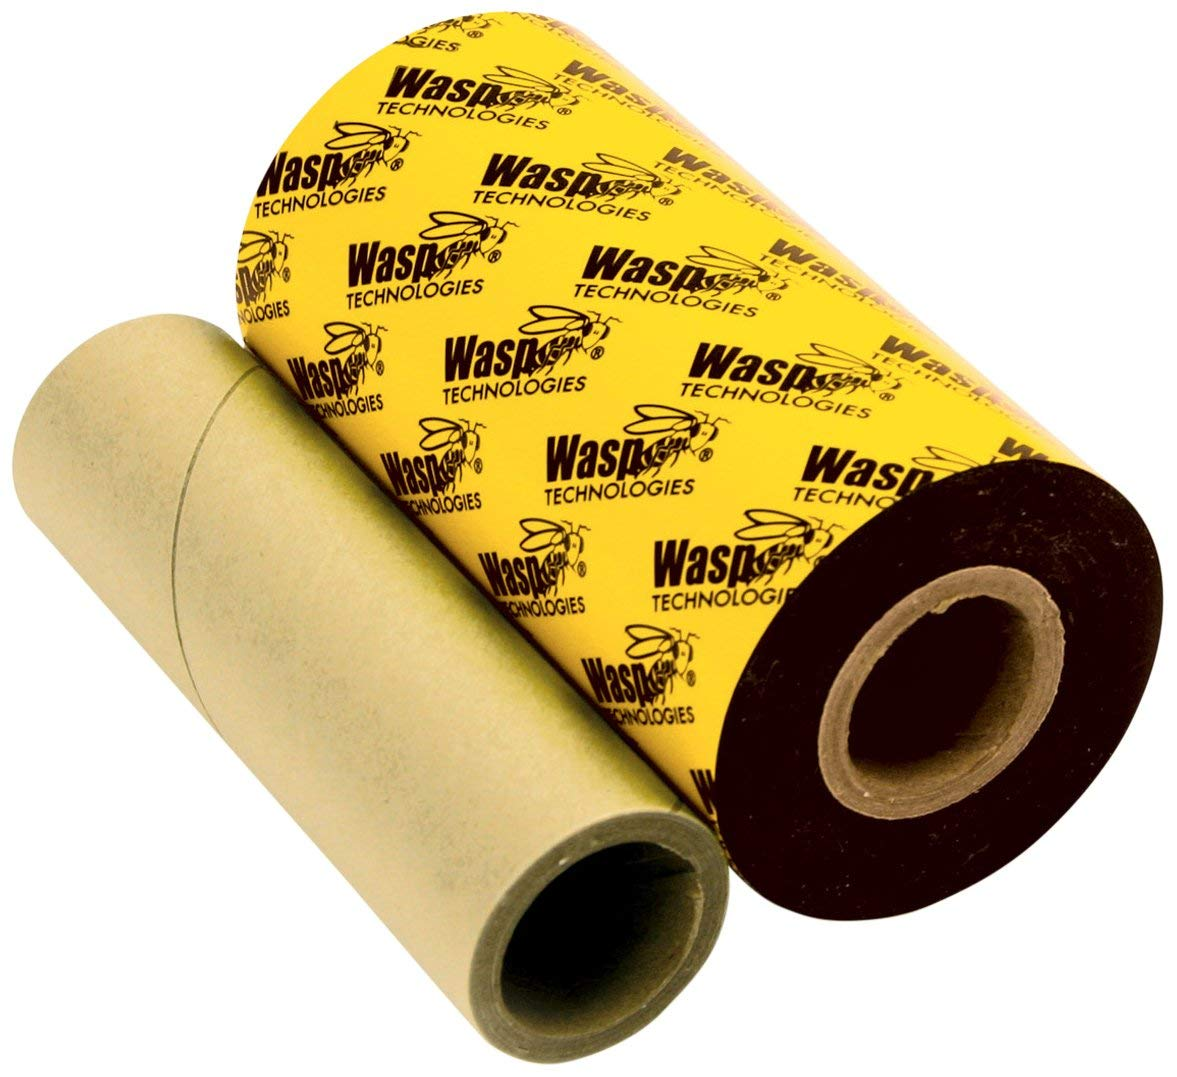 WPR 2.16 X 820 WAX-RESIN RIBN FOR WASP WPL 305 AND 606 PRINTERS